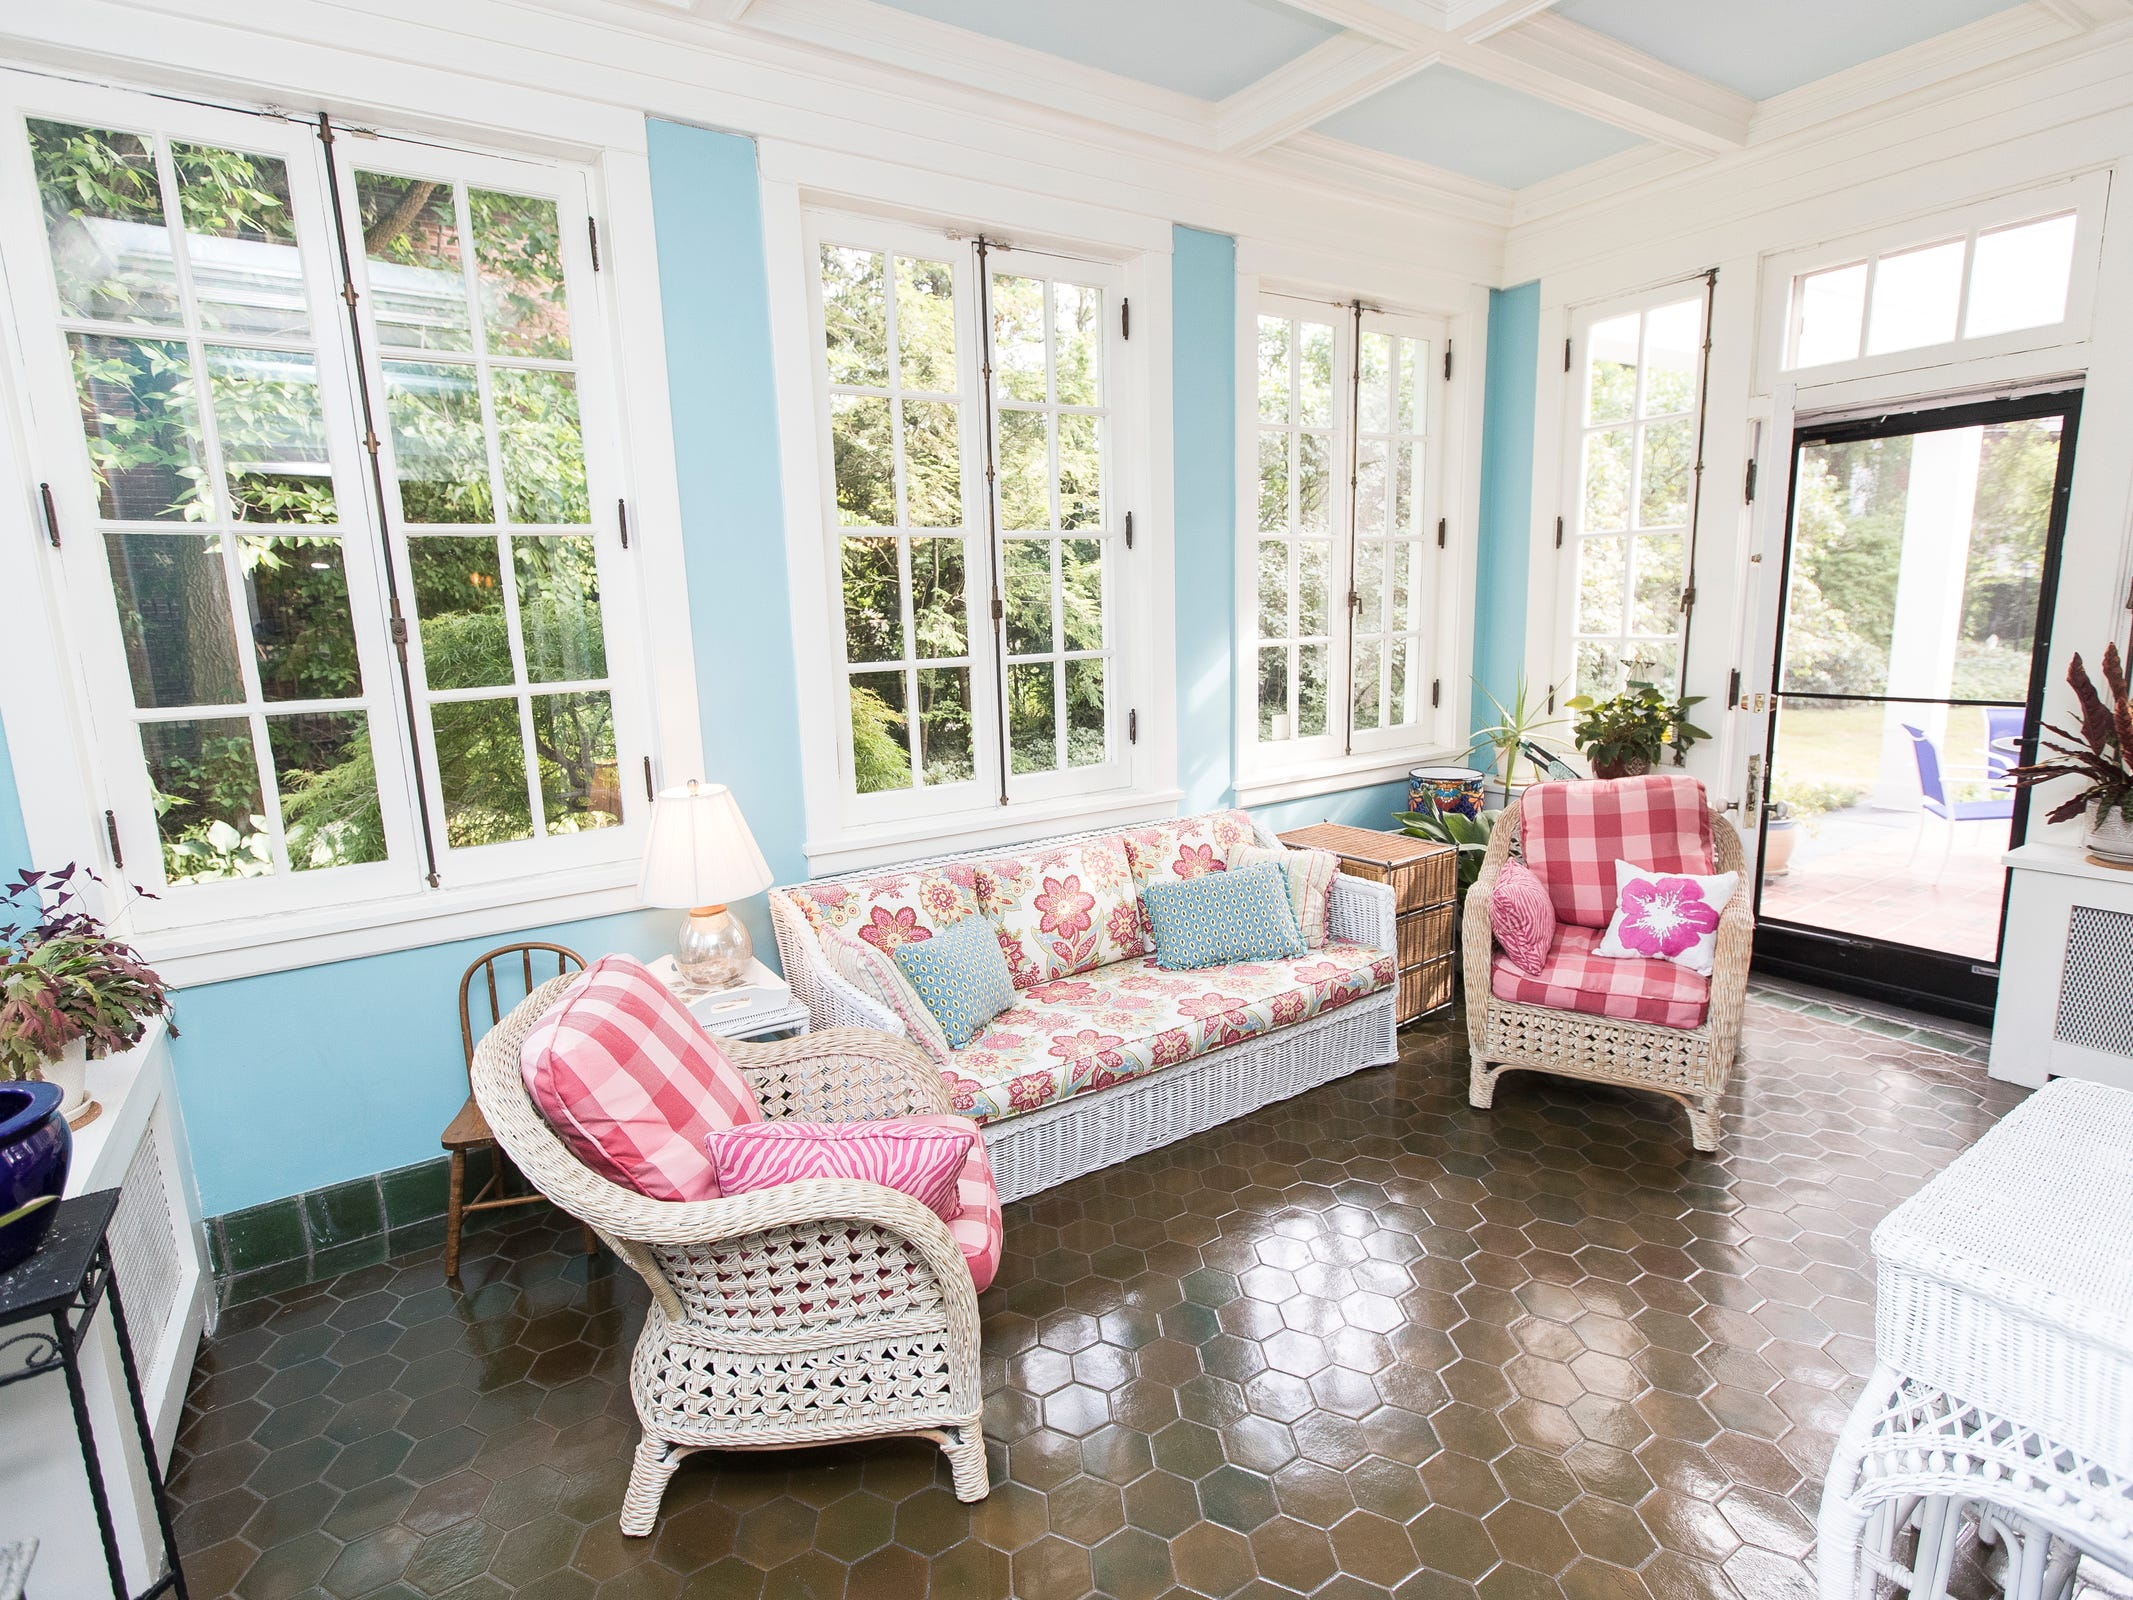 The aqua and white sunroom with a Pewabic tile floor.